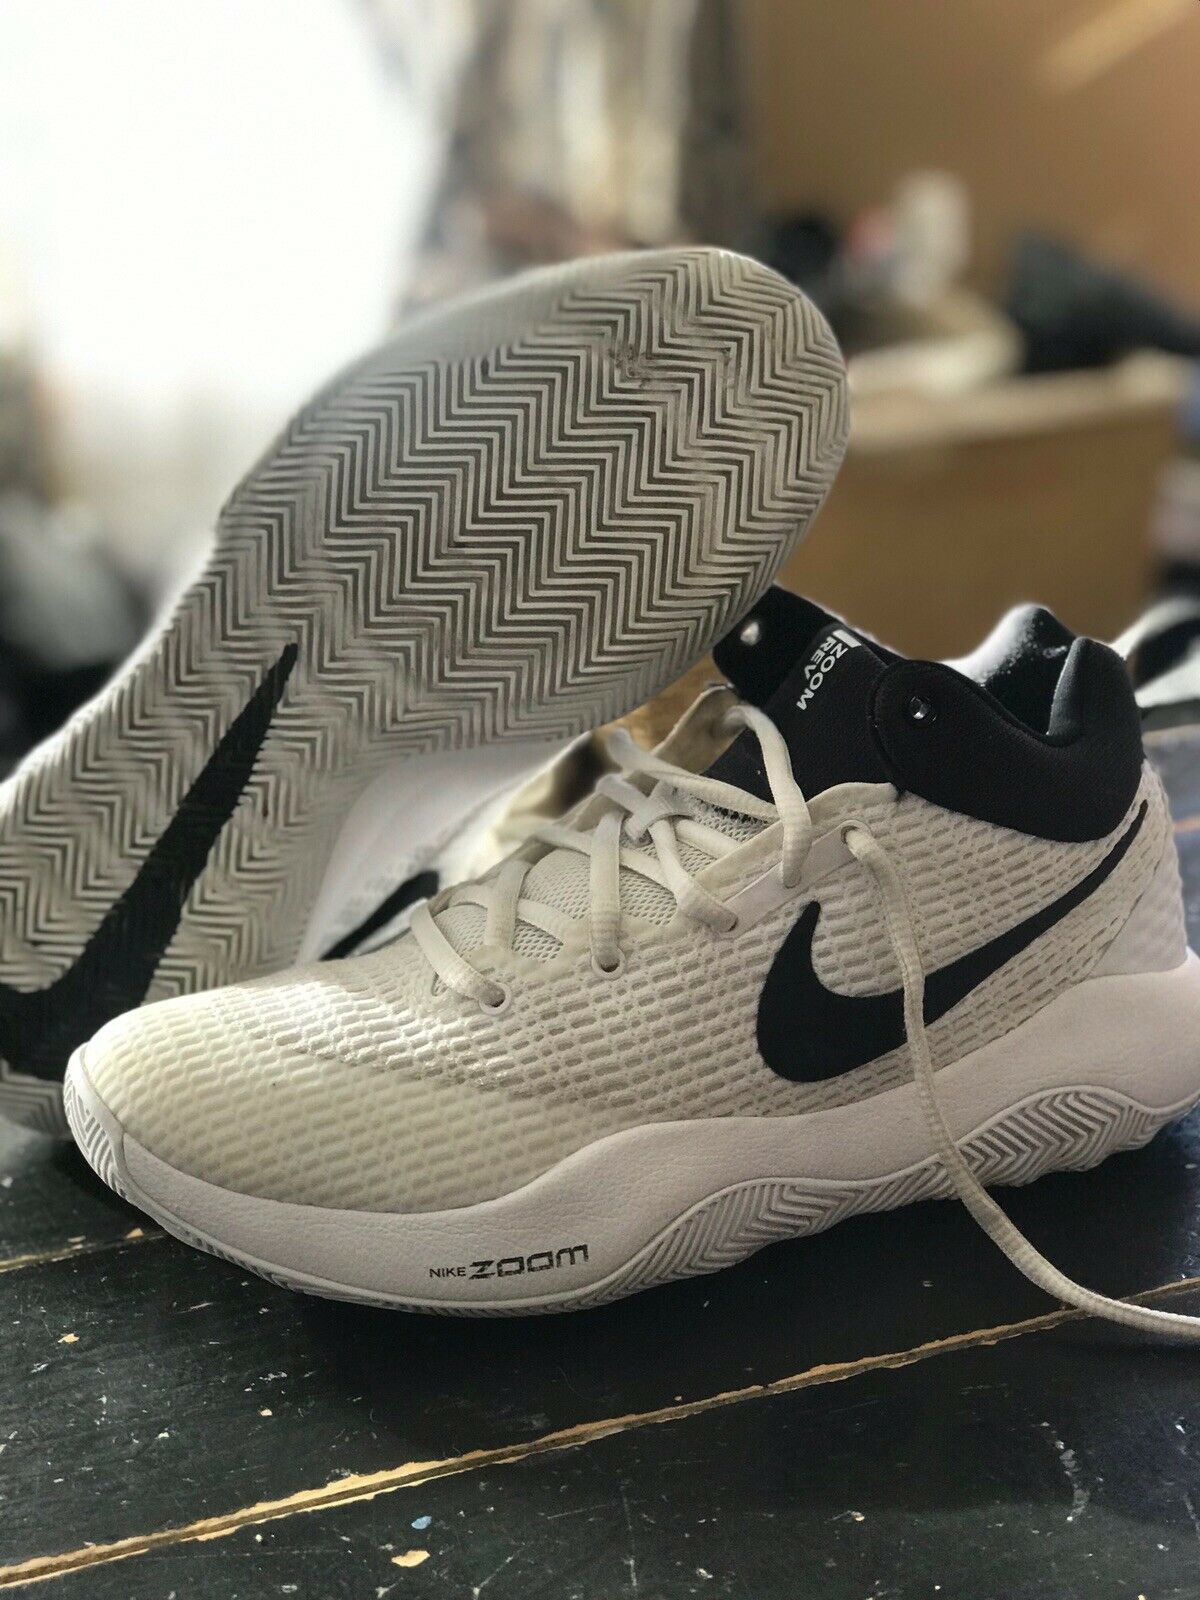 NIKE Zoom Rev TB, White Black, Size 7, Basketball shoes, Used Once.